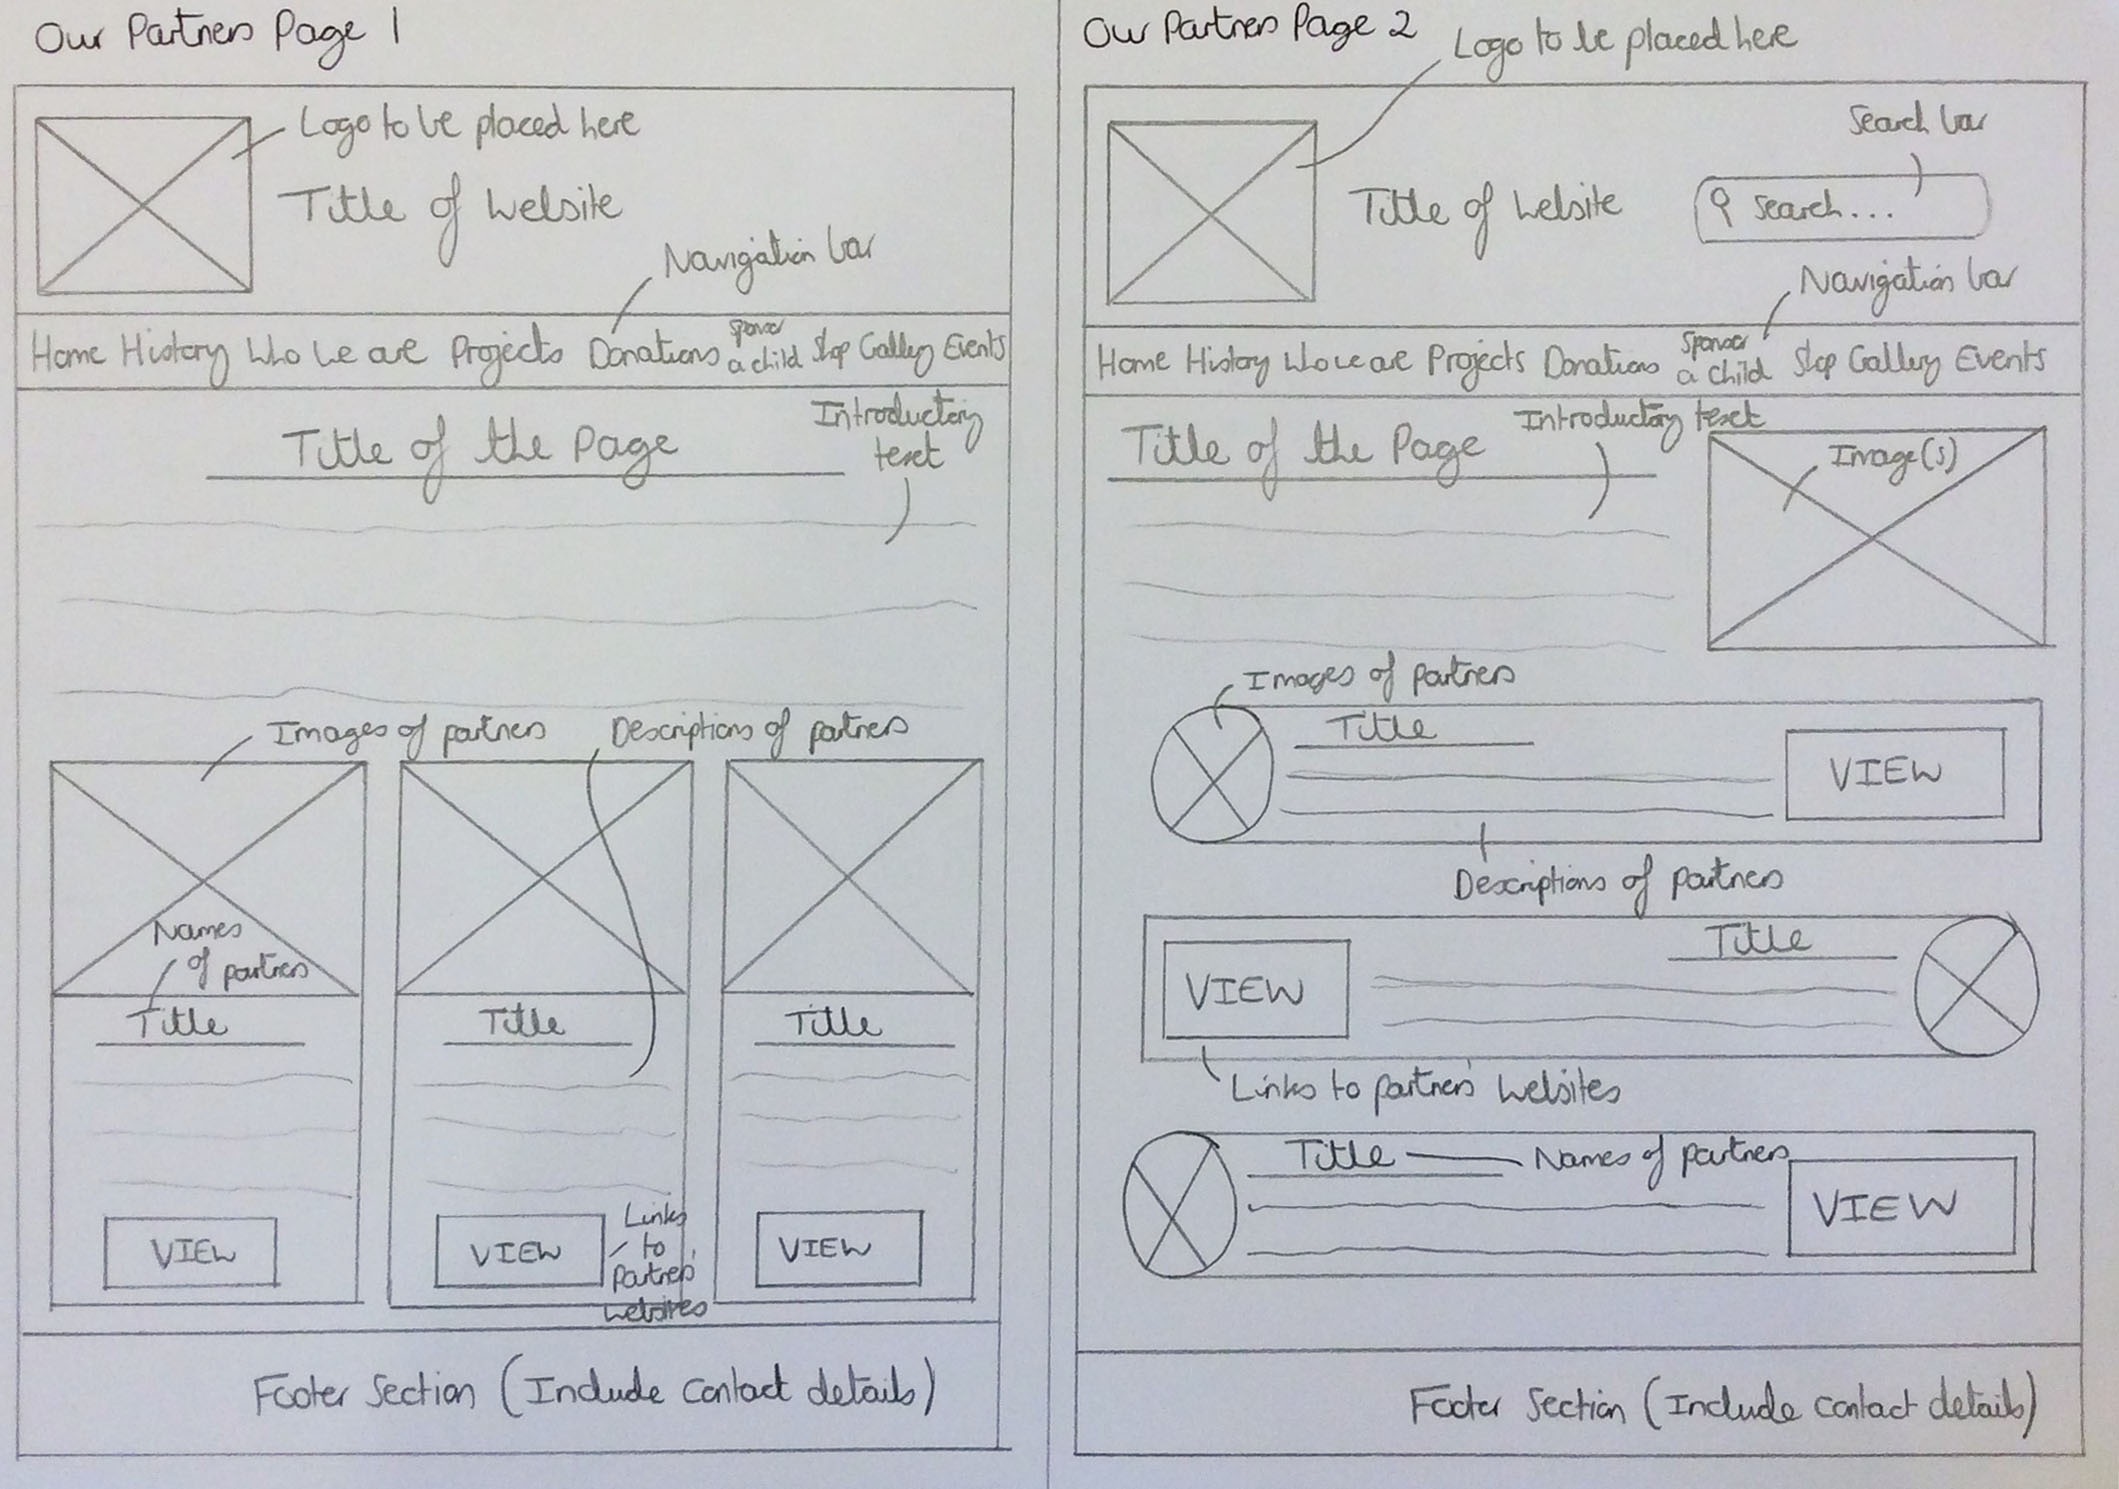 The Sketched Our Partners Page Wireframes 1 and 2